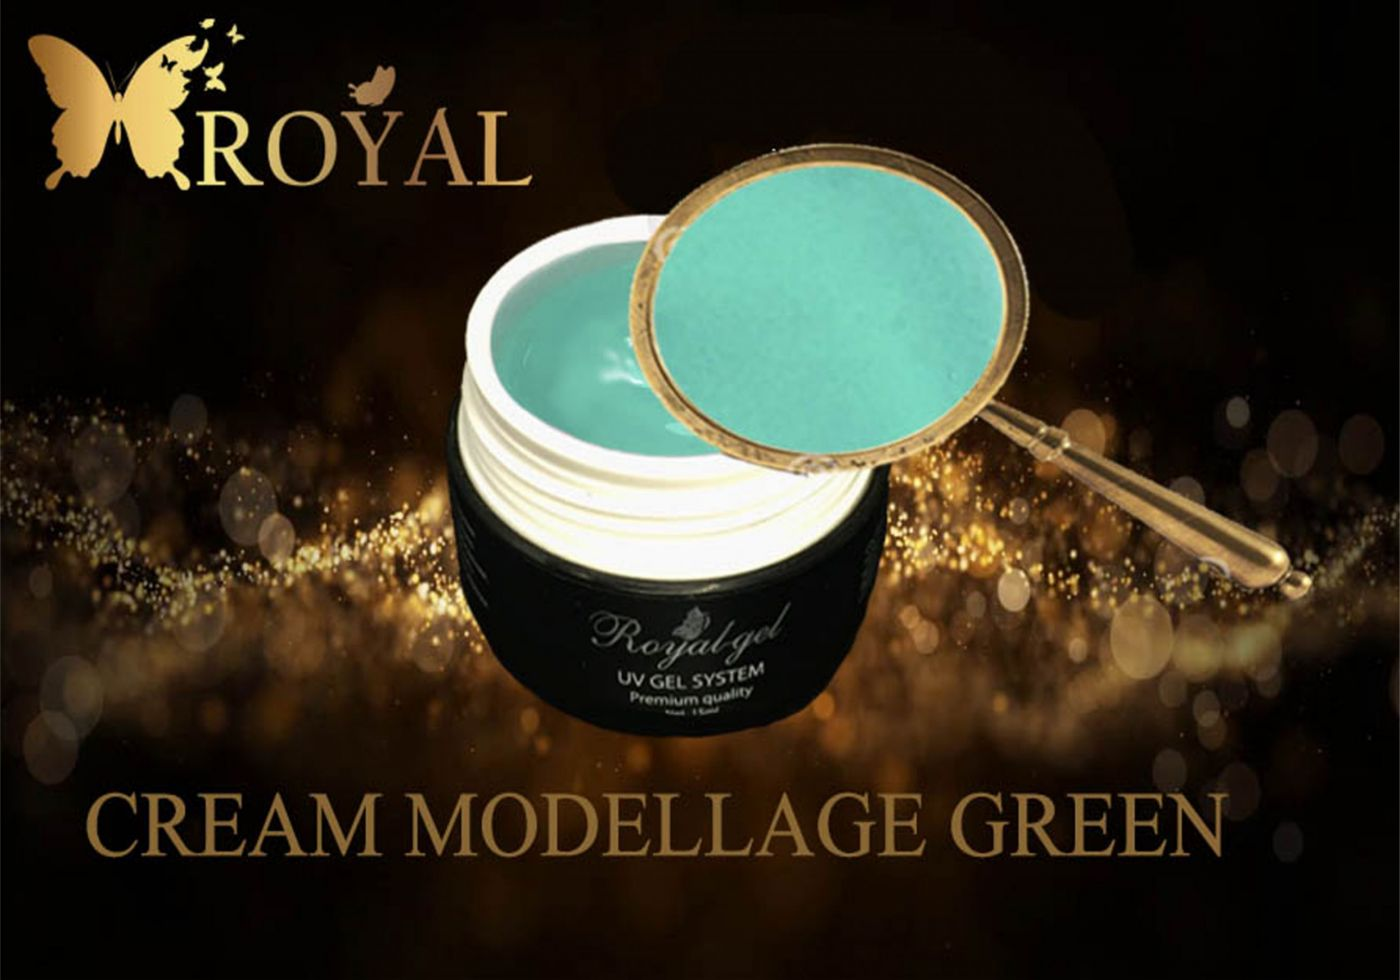 CREAM MODELLAGE GREEN ROYAL GEL